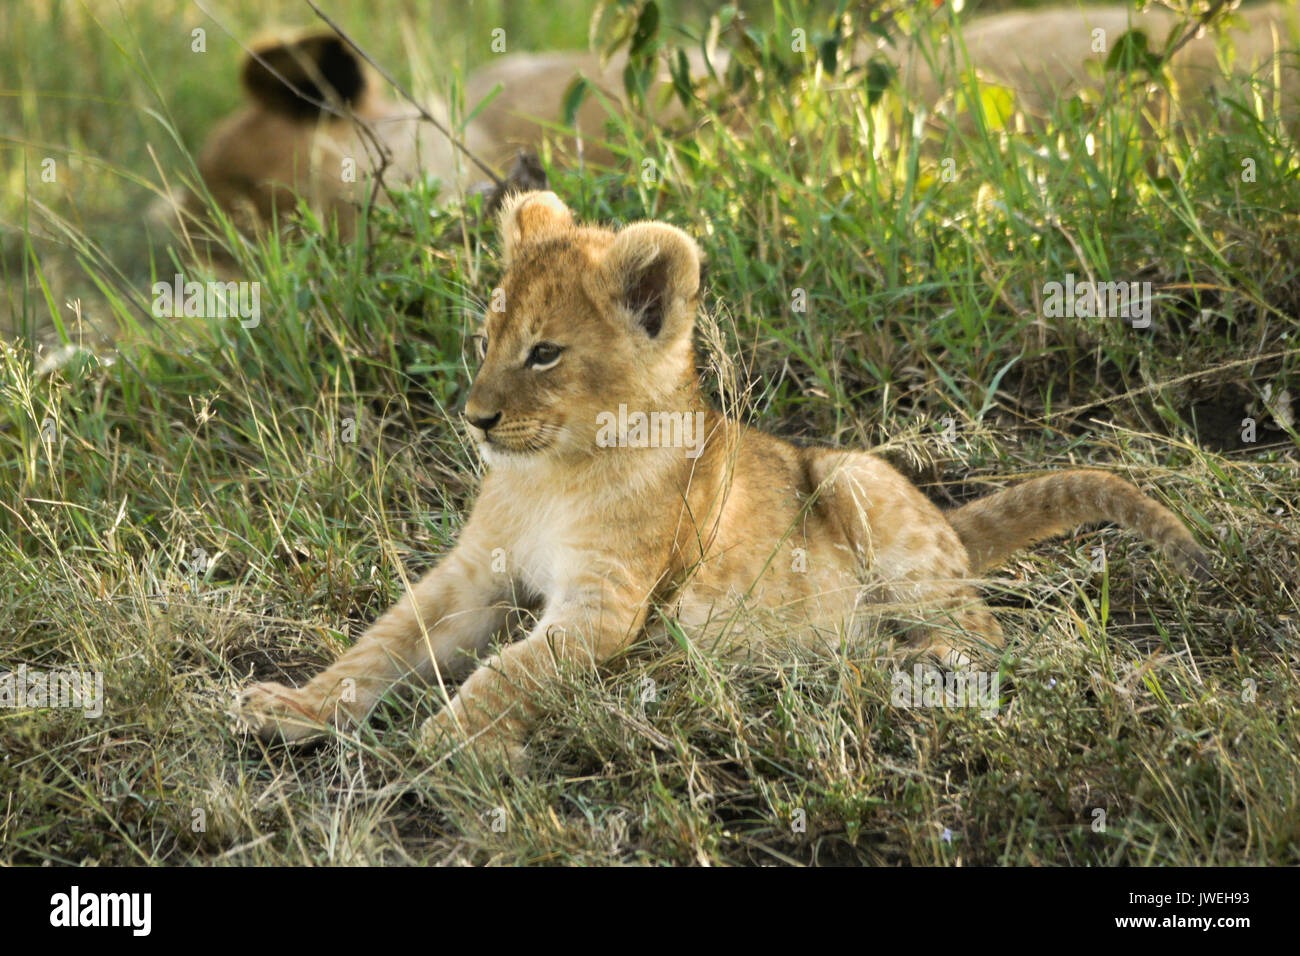 Tiny lion cub awake while the rest of the pride sleeps in the shade, Masai Mara Game Reserve, Kenya - Stock Image